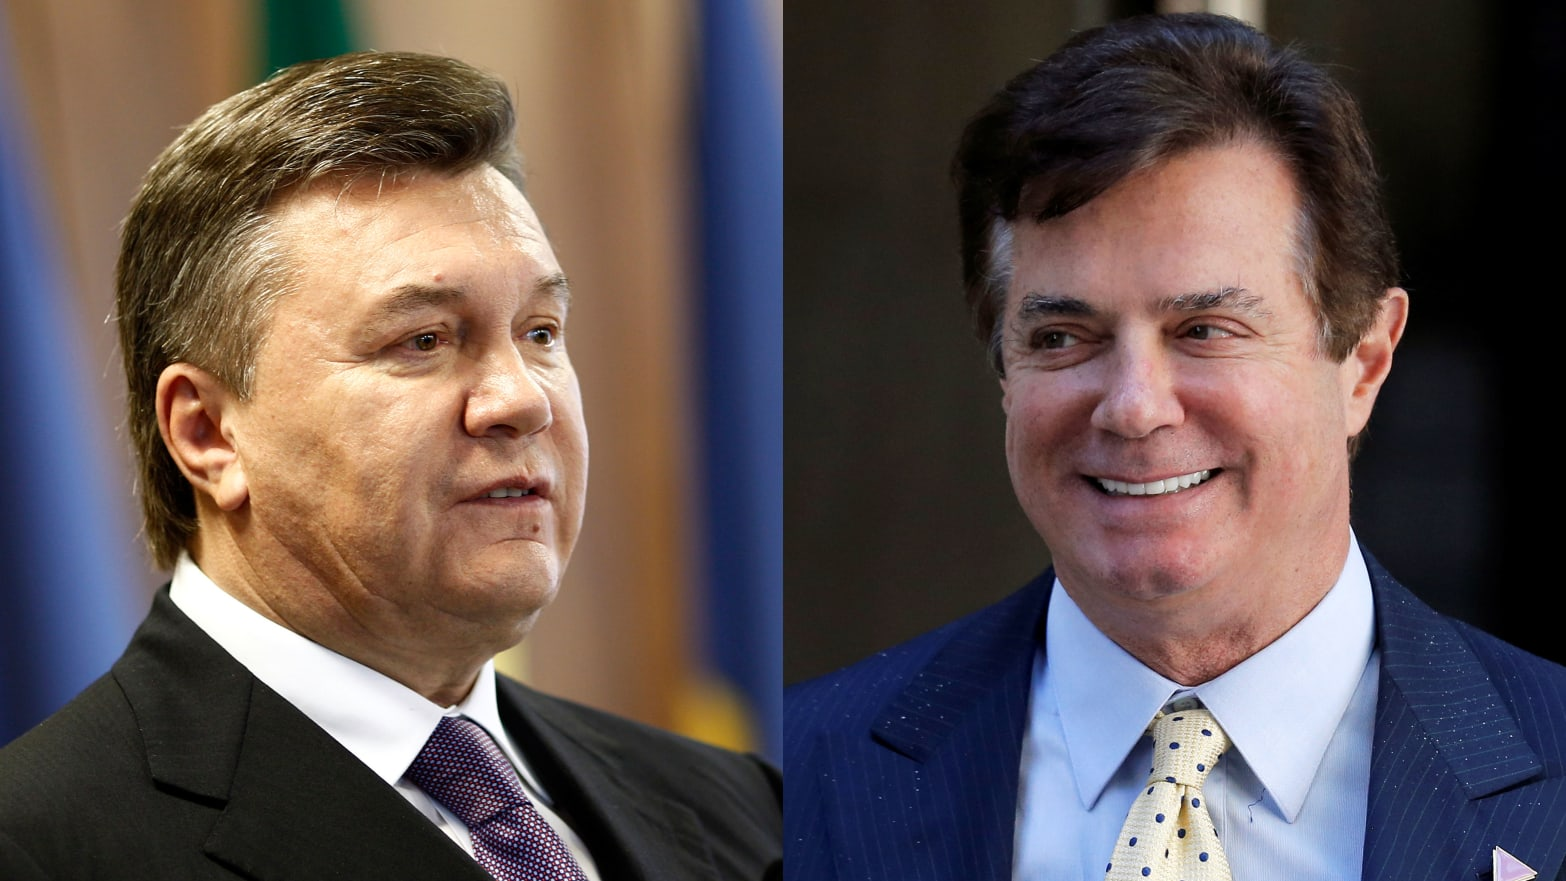 Image result for IMAGES OF President Viktor Yanukovych PAUL MANAFORT